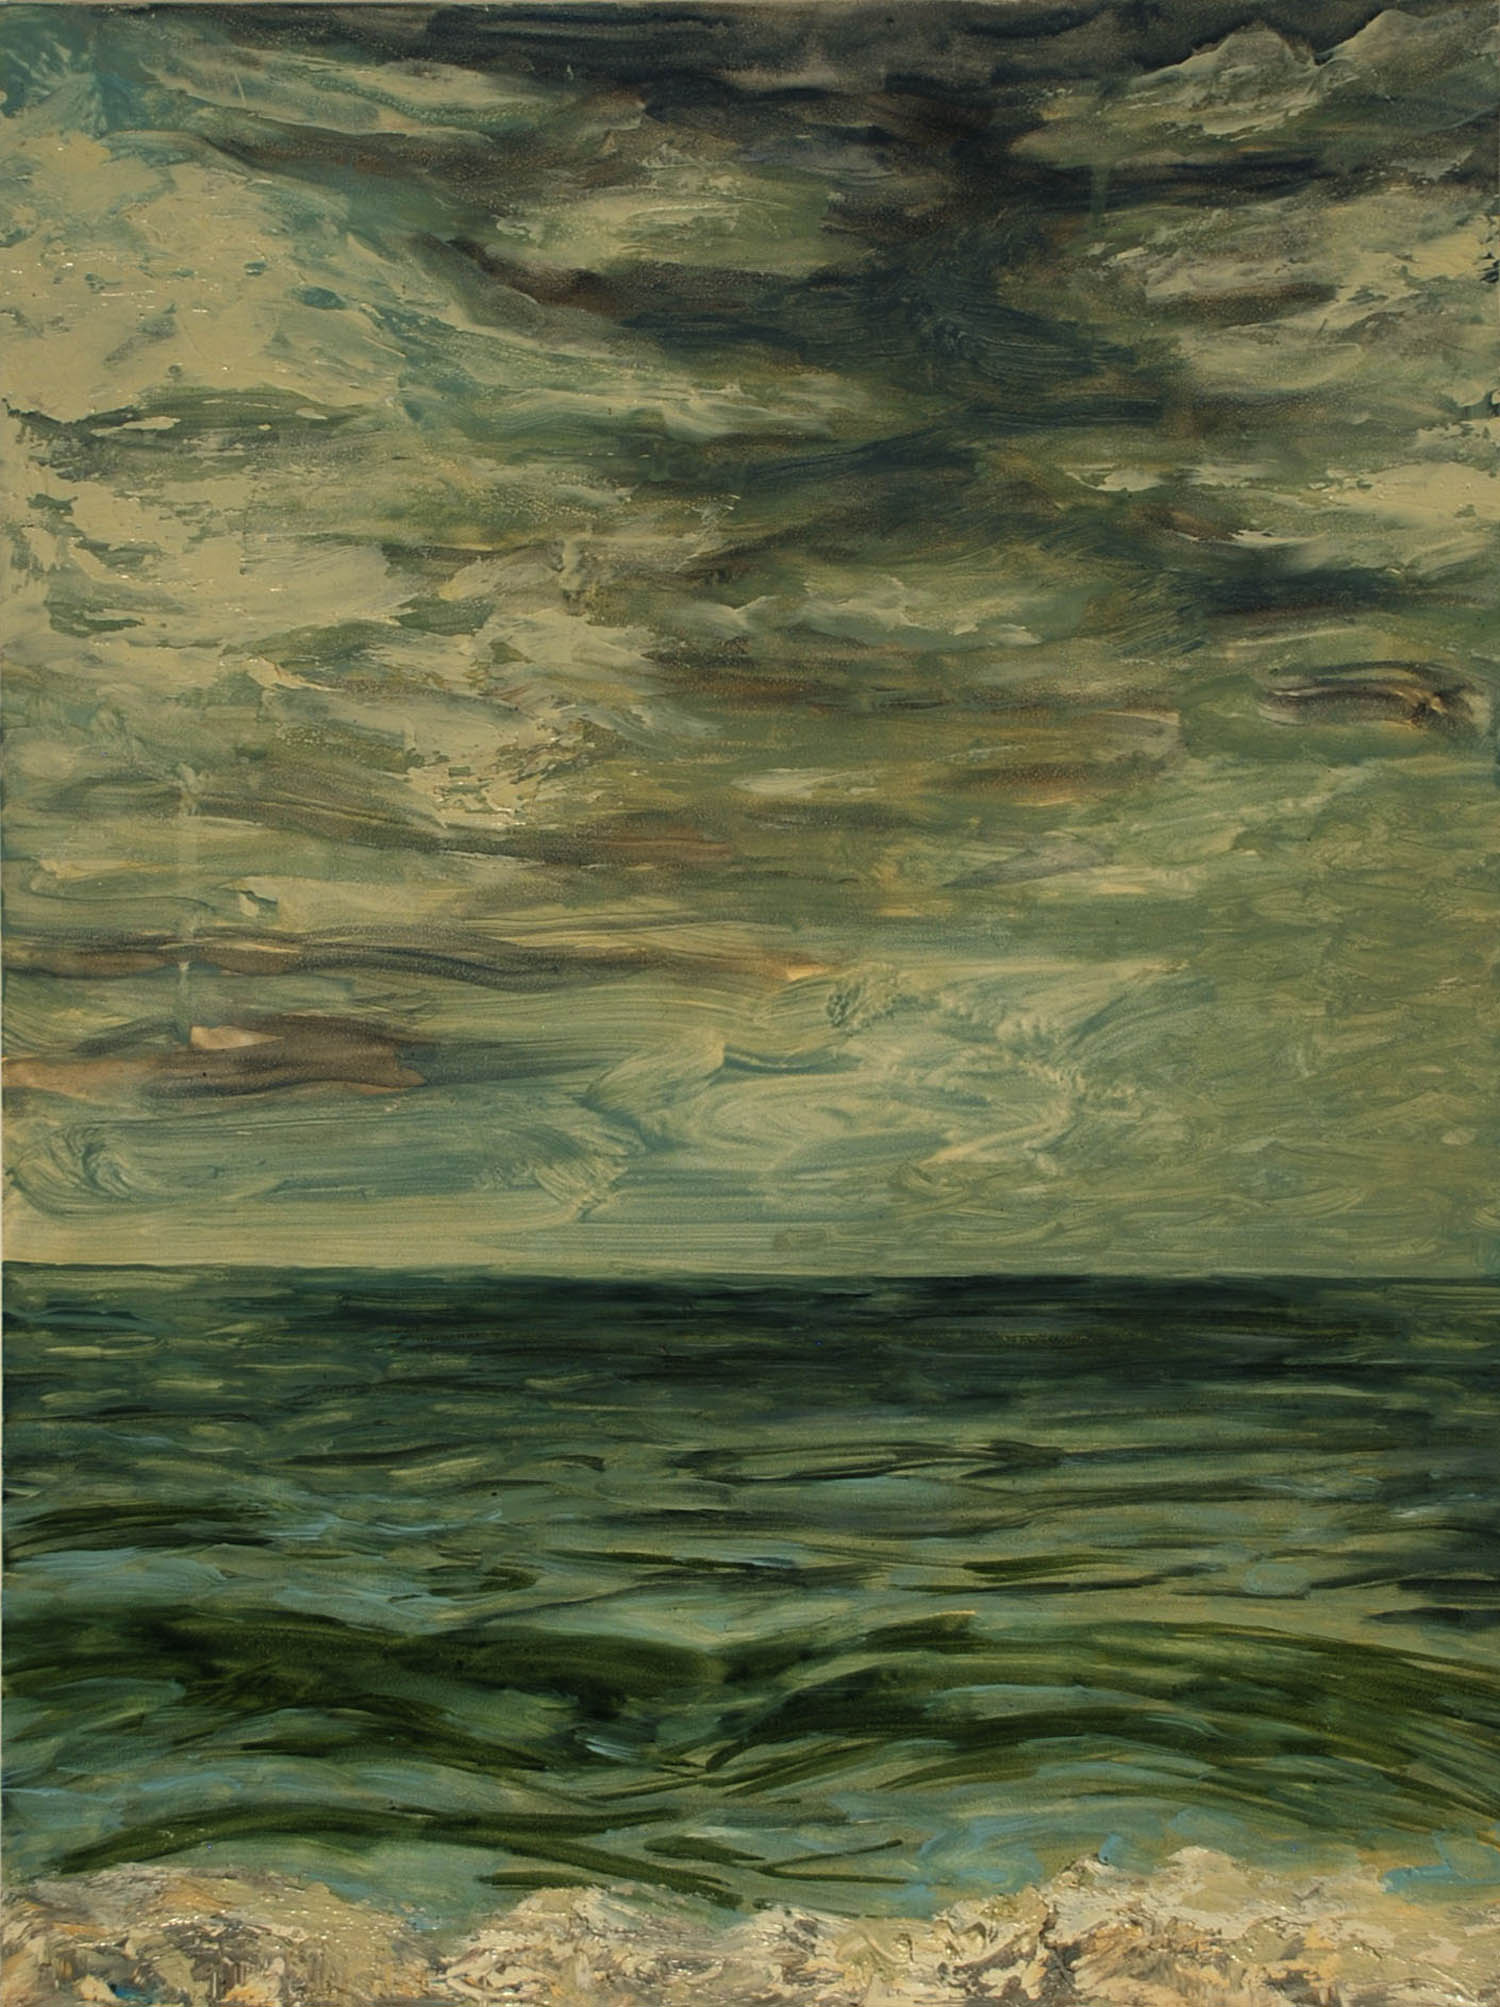 Gray Day, Green Waves, oil on panel